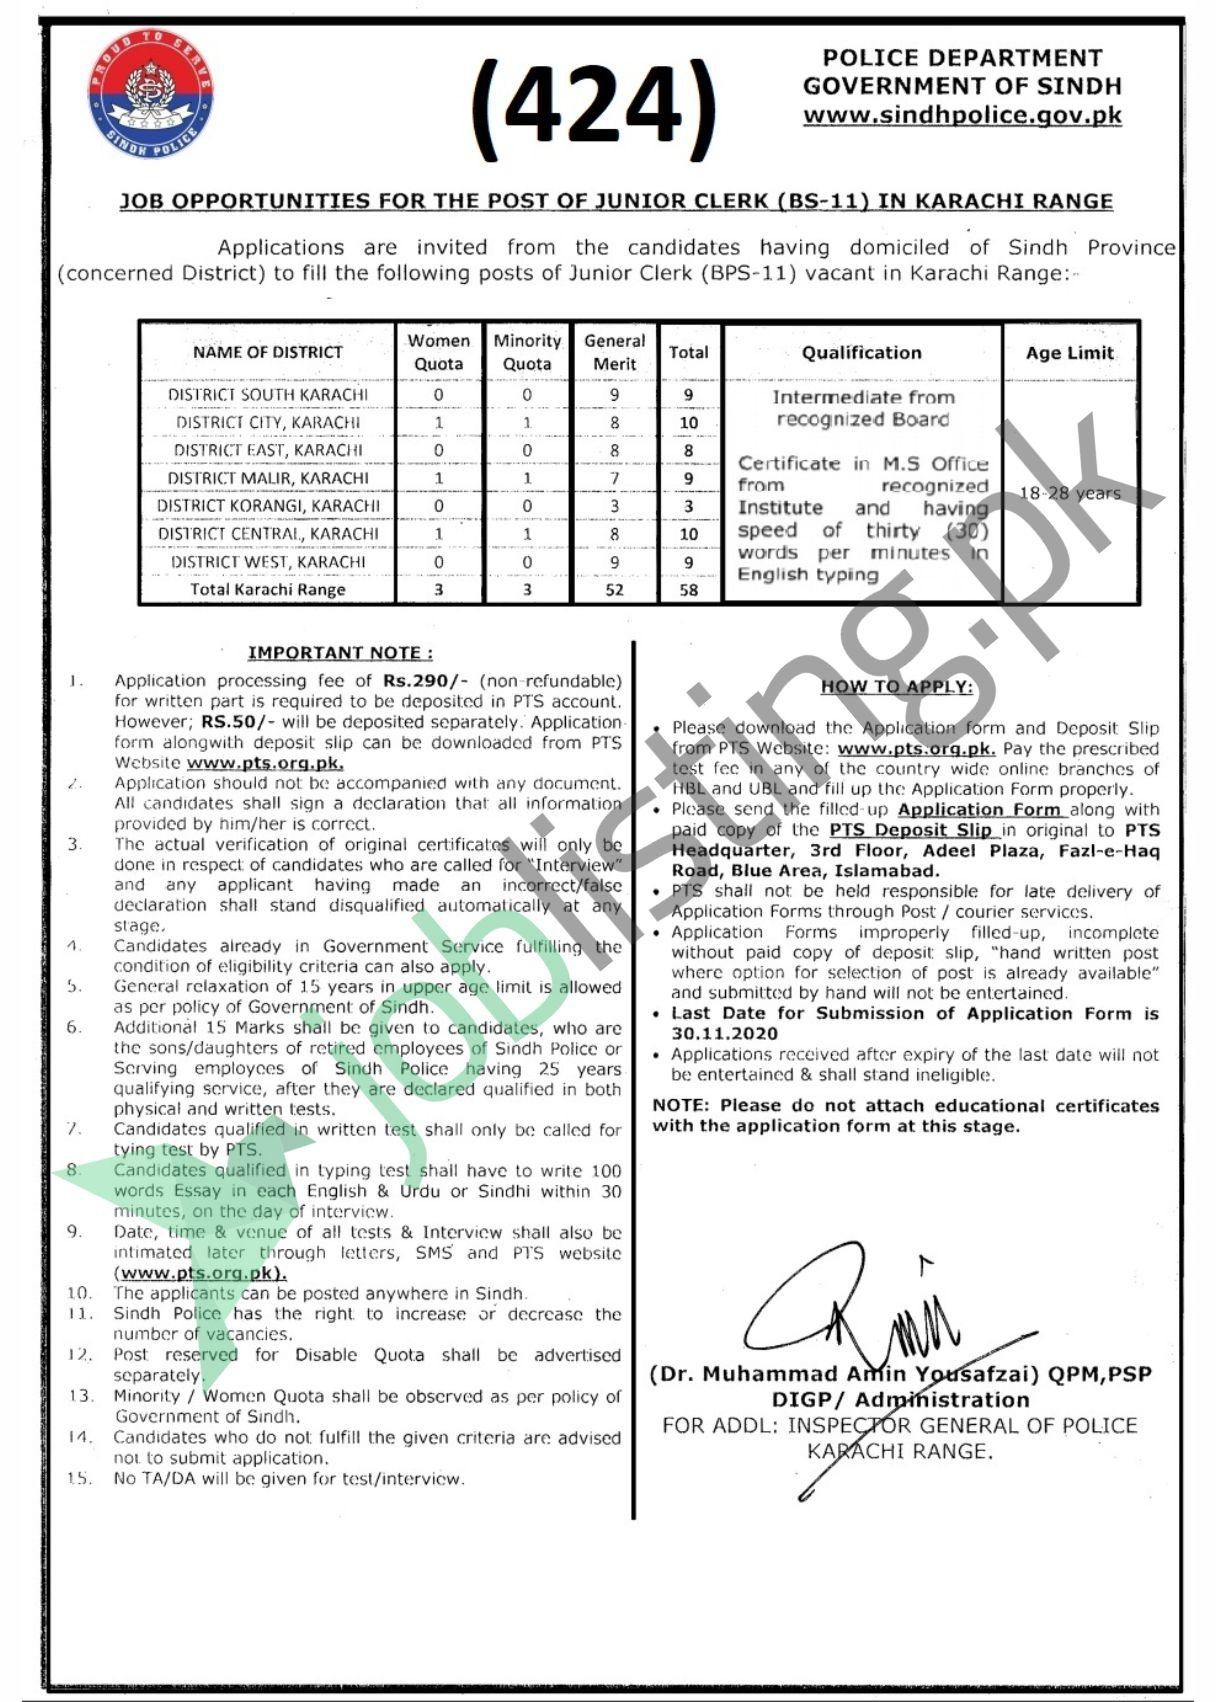 PST Application form Sindh Police Jobs 2020 for Junior Clerk